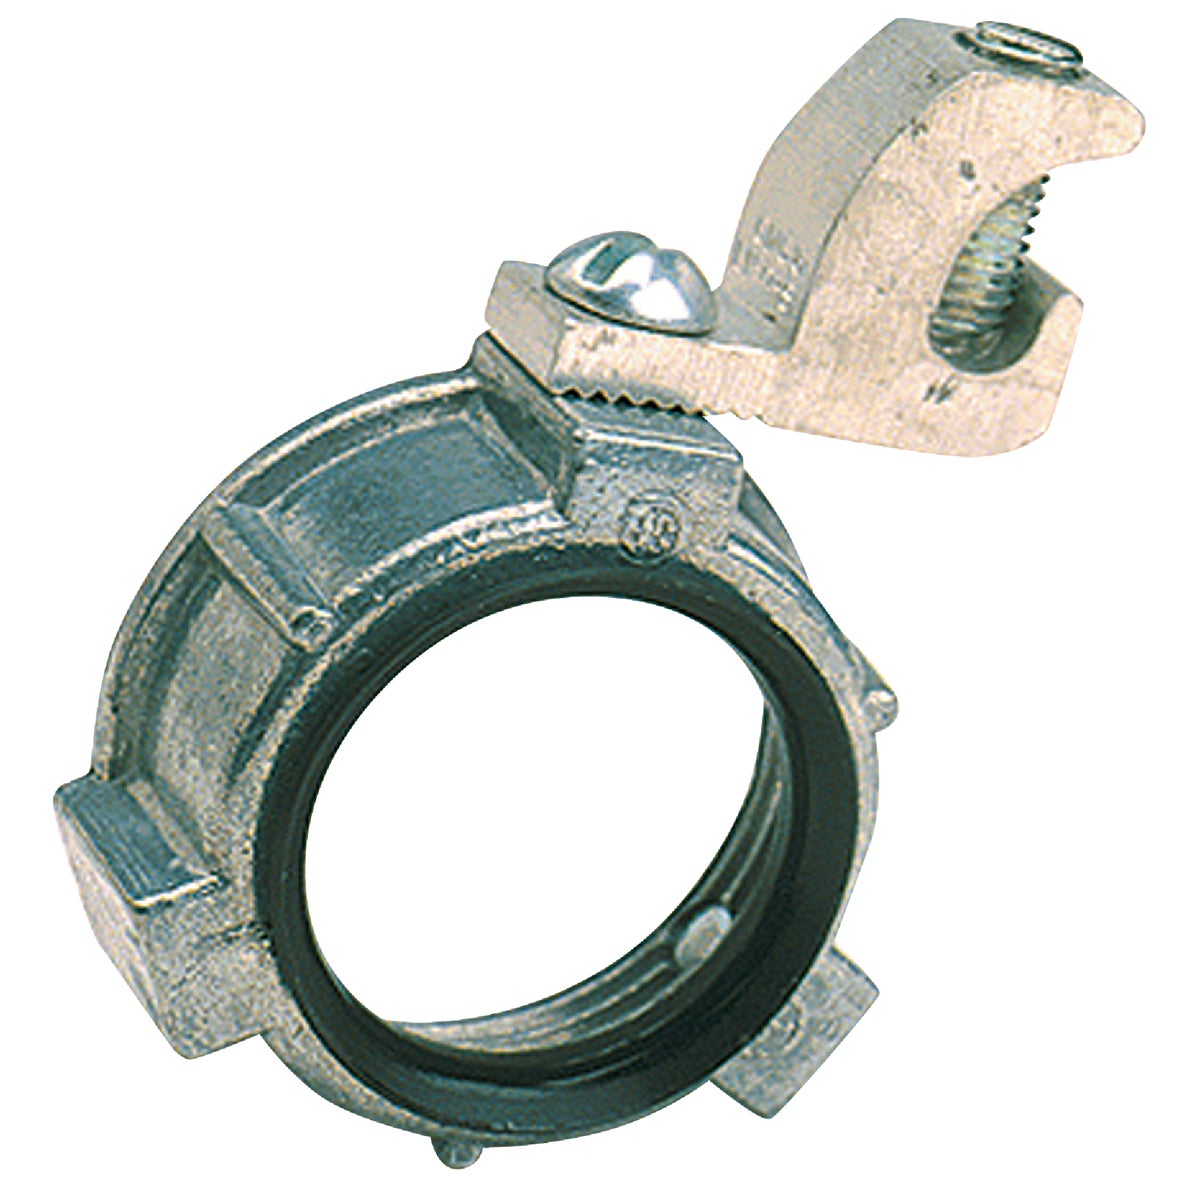 "1-1/2"" BUSHING - BG205A1 by Thomas & Betts"